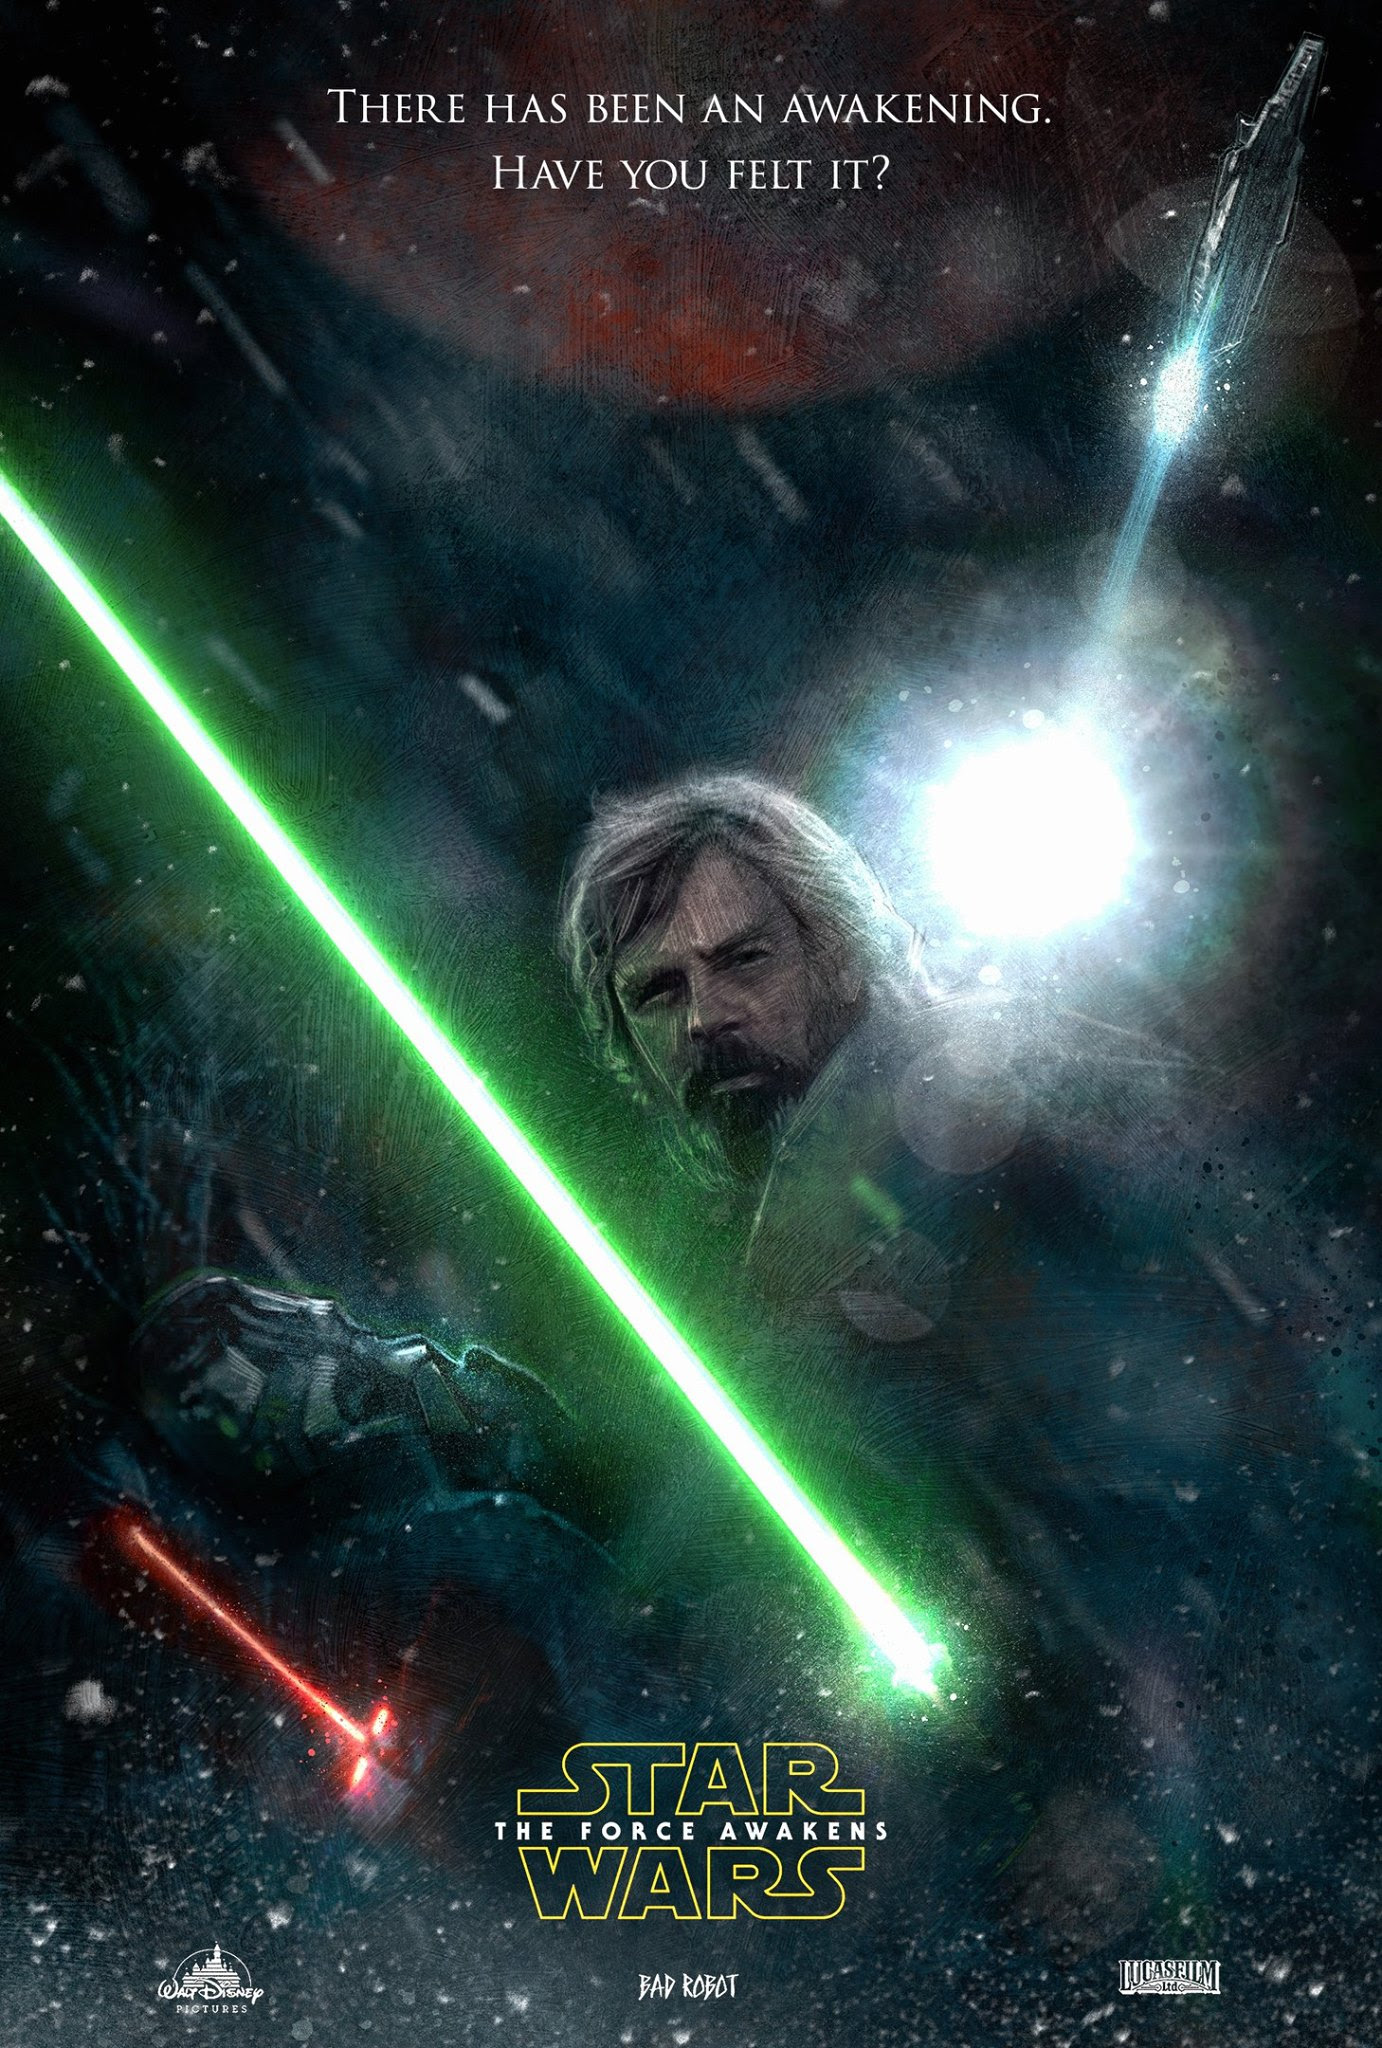 http://i1.wp.com/www.slashfilm.com/wp/wp-content/images/Paul-Shipper-Star-Wars-Force-Awakens.jpg